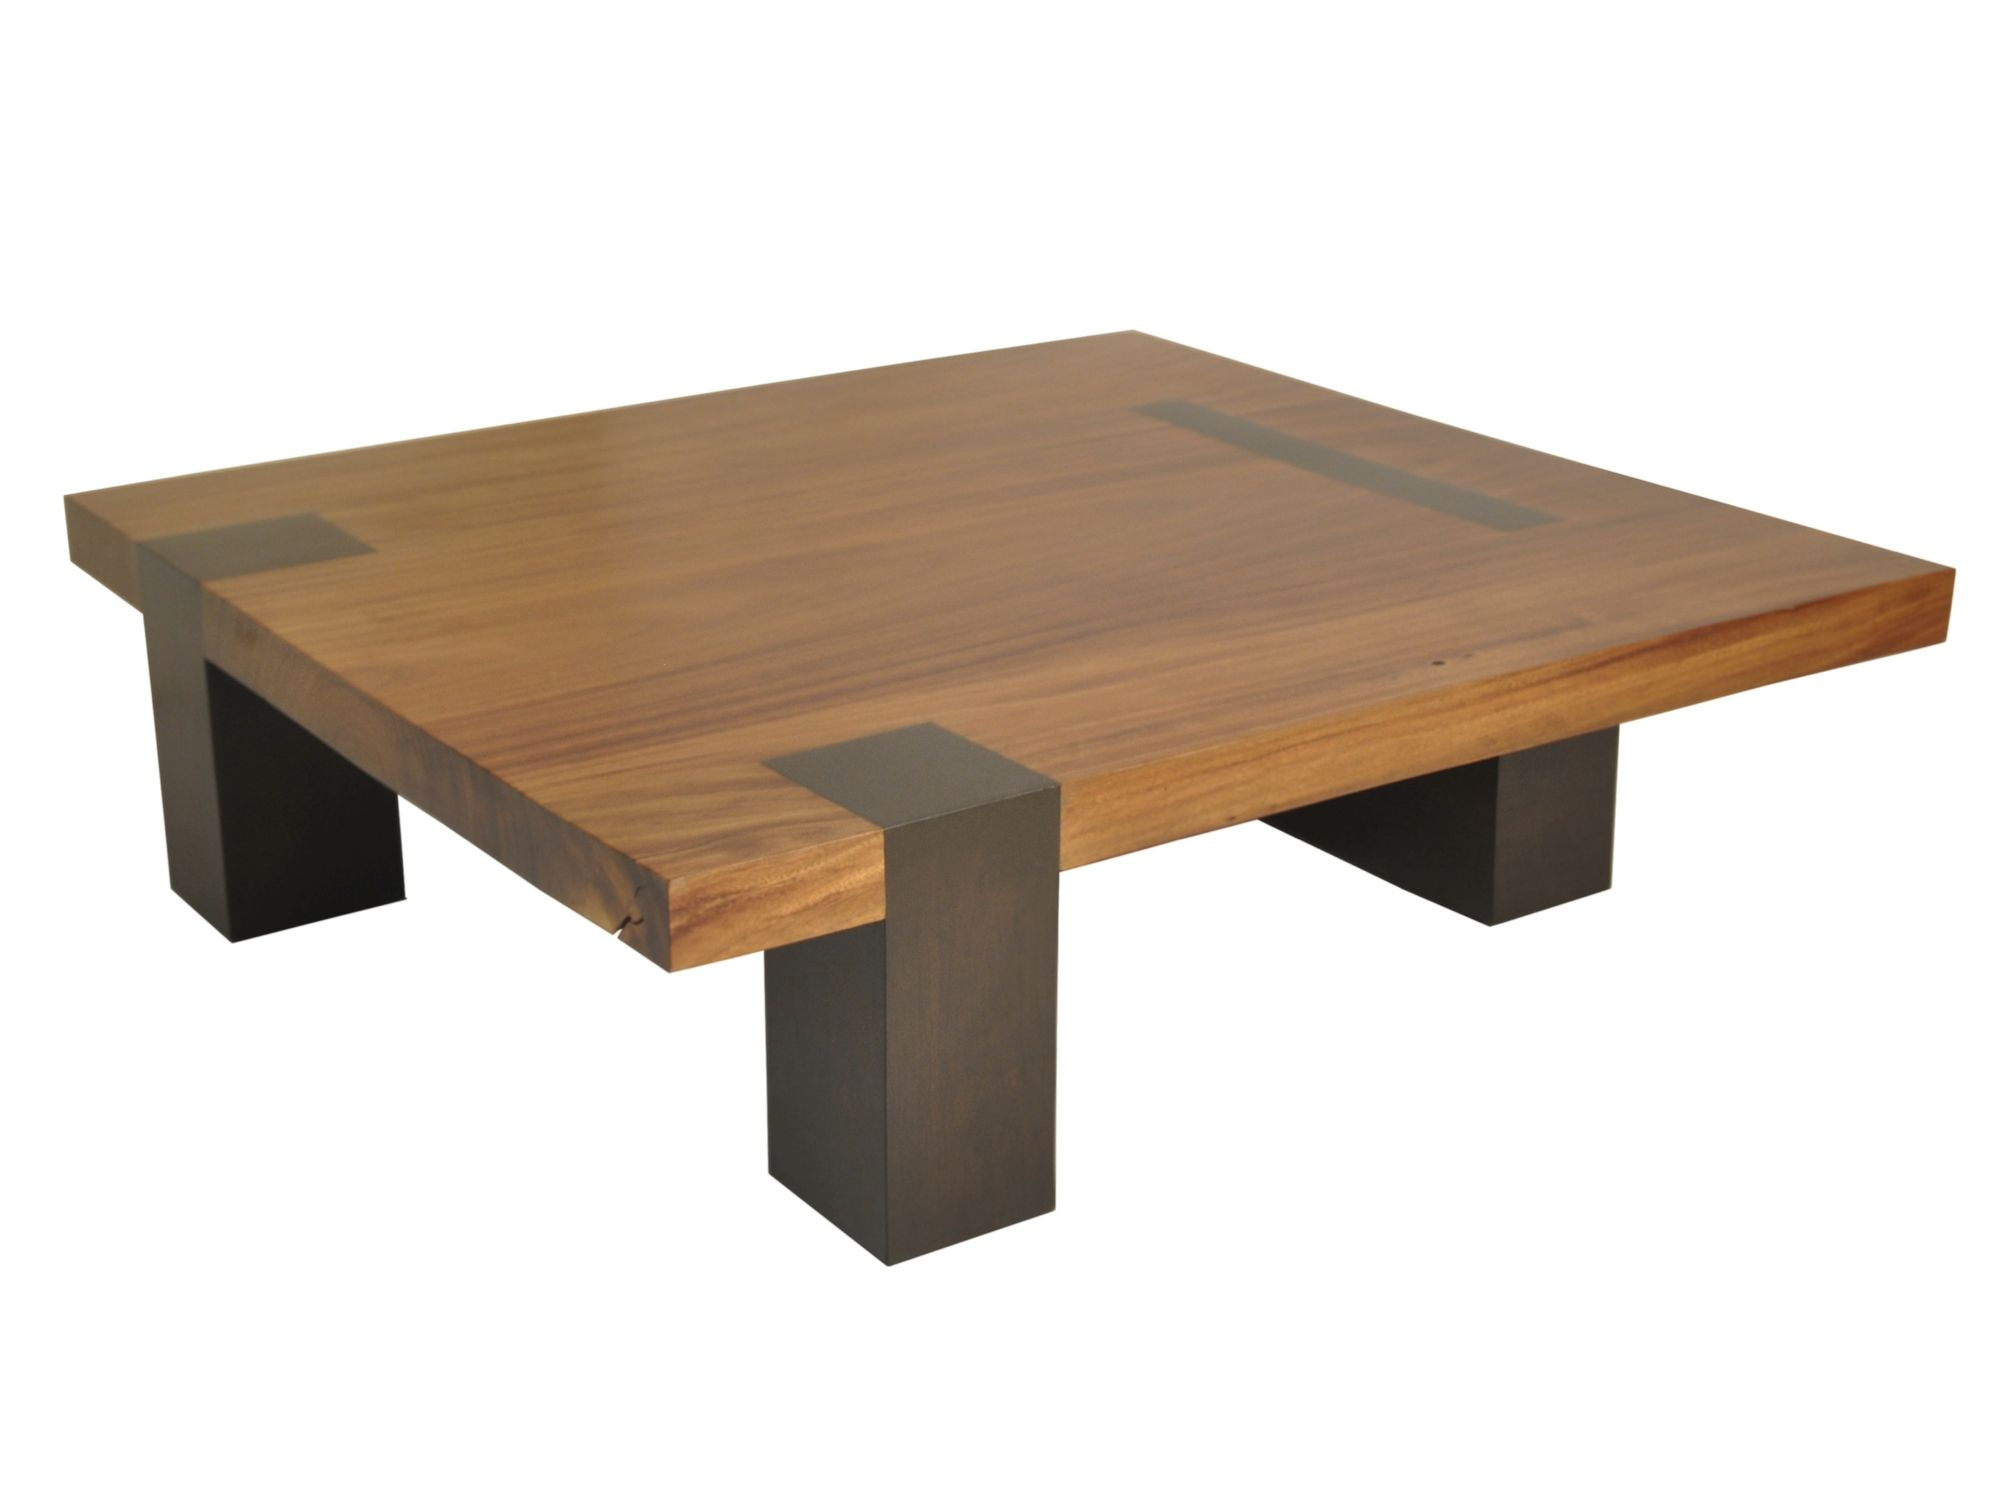 Contemporary Coffee Table Square Tamburil Rotsen Furniture Wooden Square In Reclaimed Material